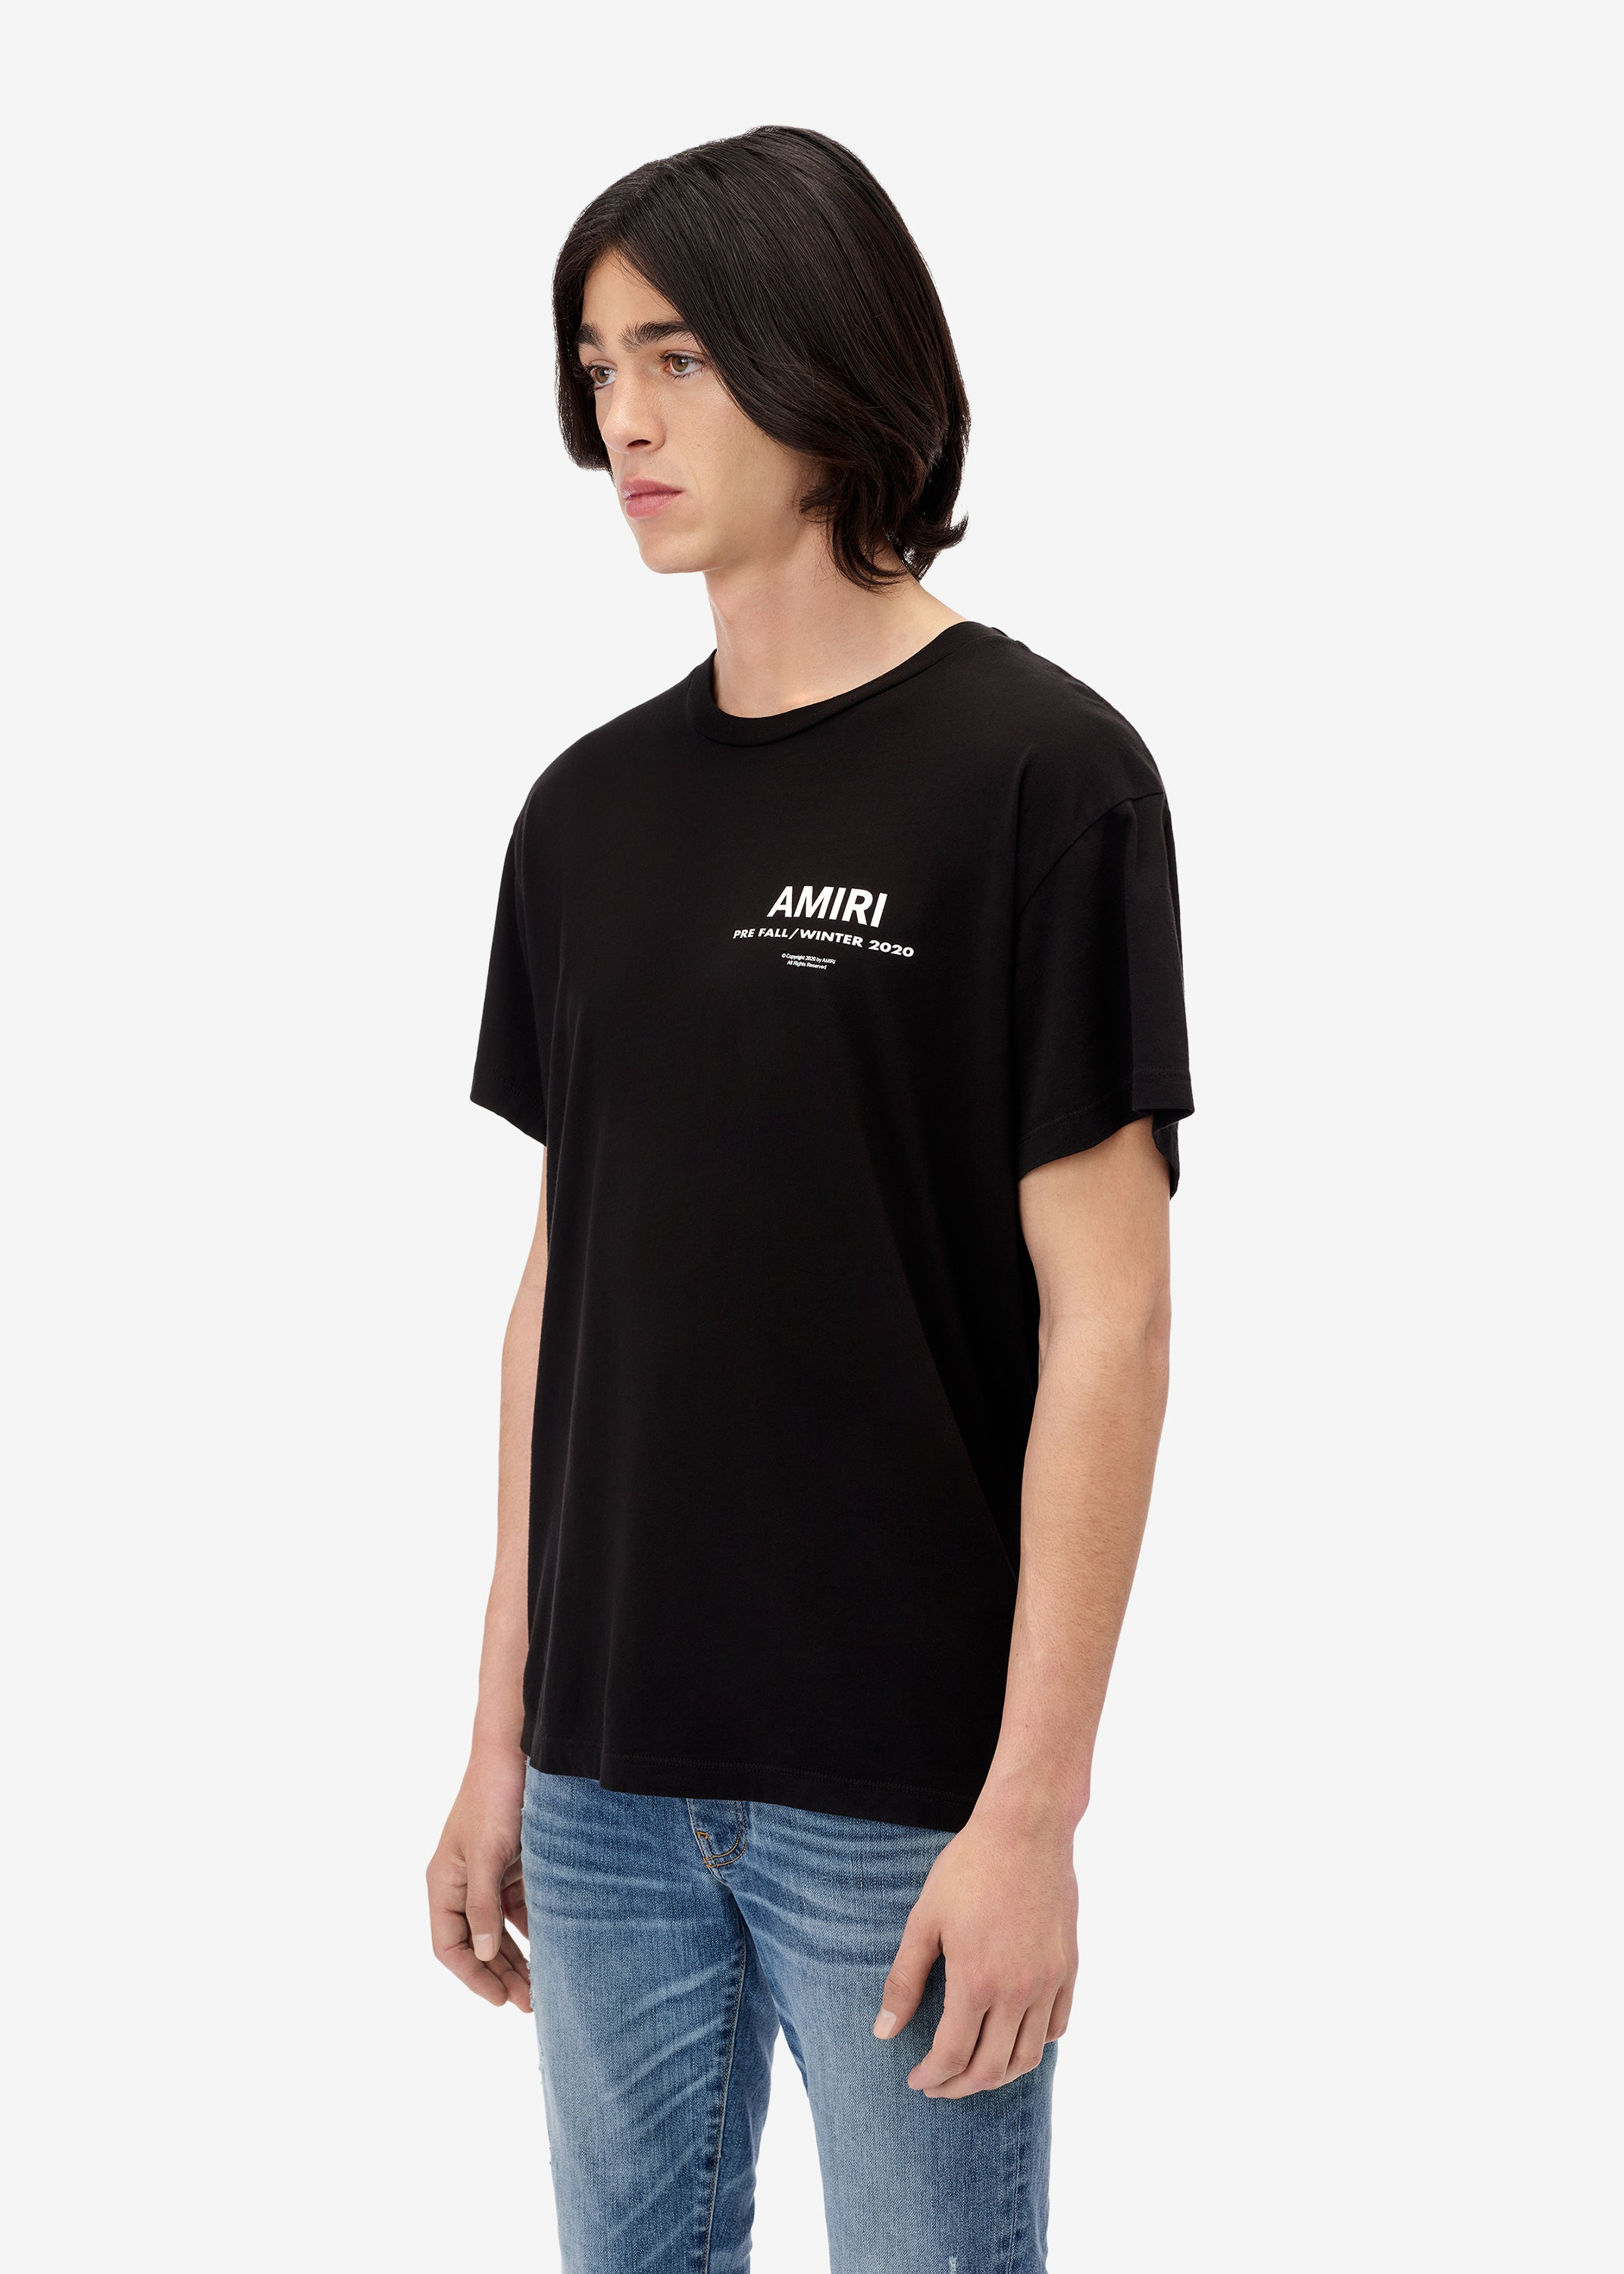 pf20-amiri-tee-web-exclusive-black-image-2